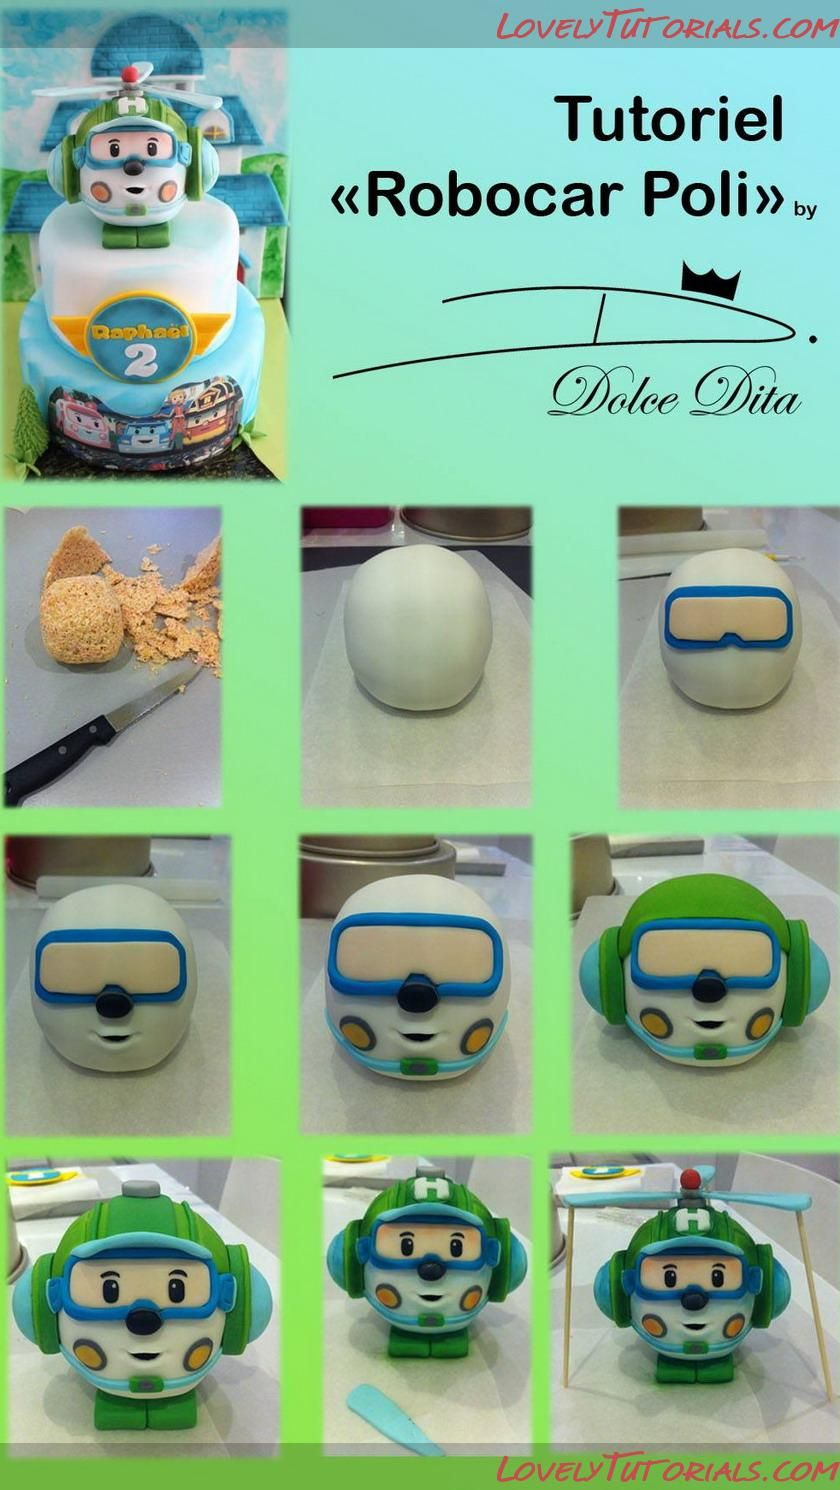 How to make a cake Robocar Poli by yourself Step-by-step master class